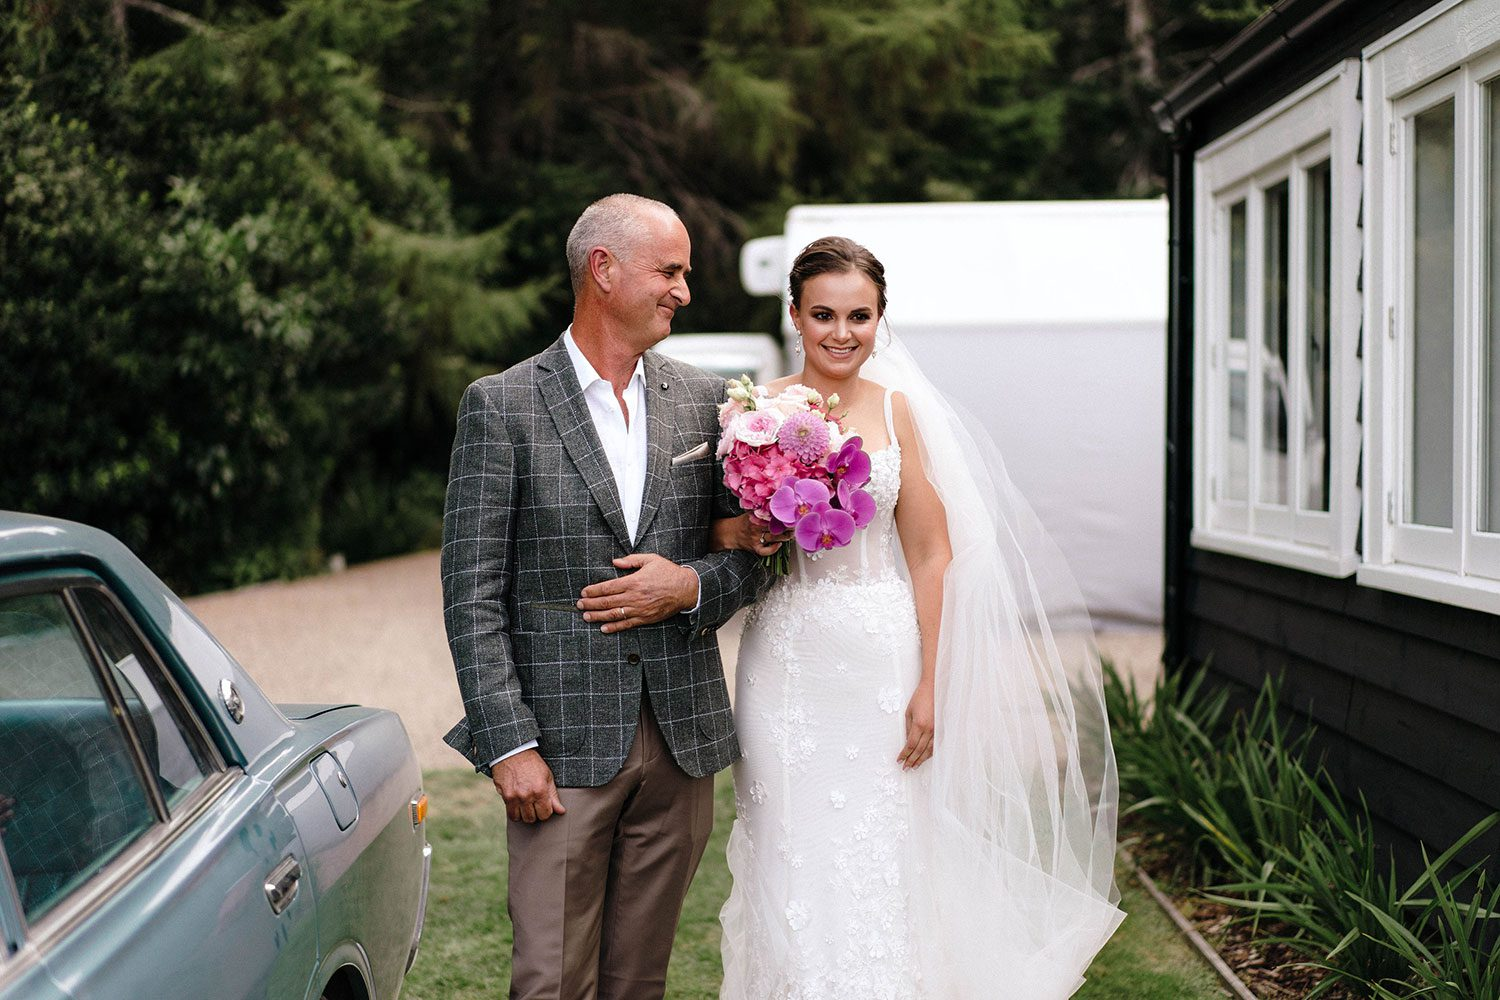 Bride wears bespoke E'More lace gown with boned bodice with hand beaded flower applique and full lace train by Auckland wedding dress maker Vinka Designs - with father